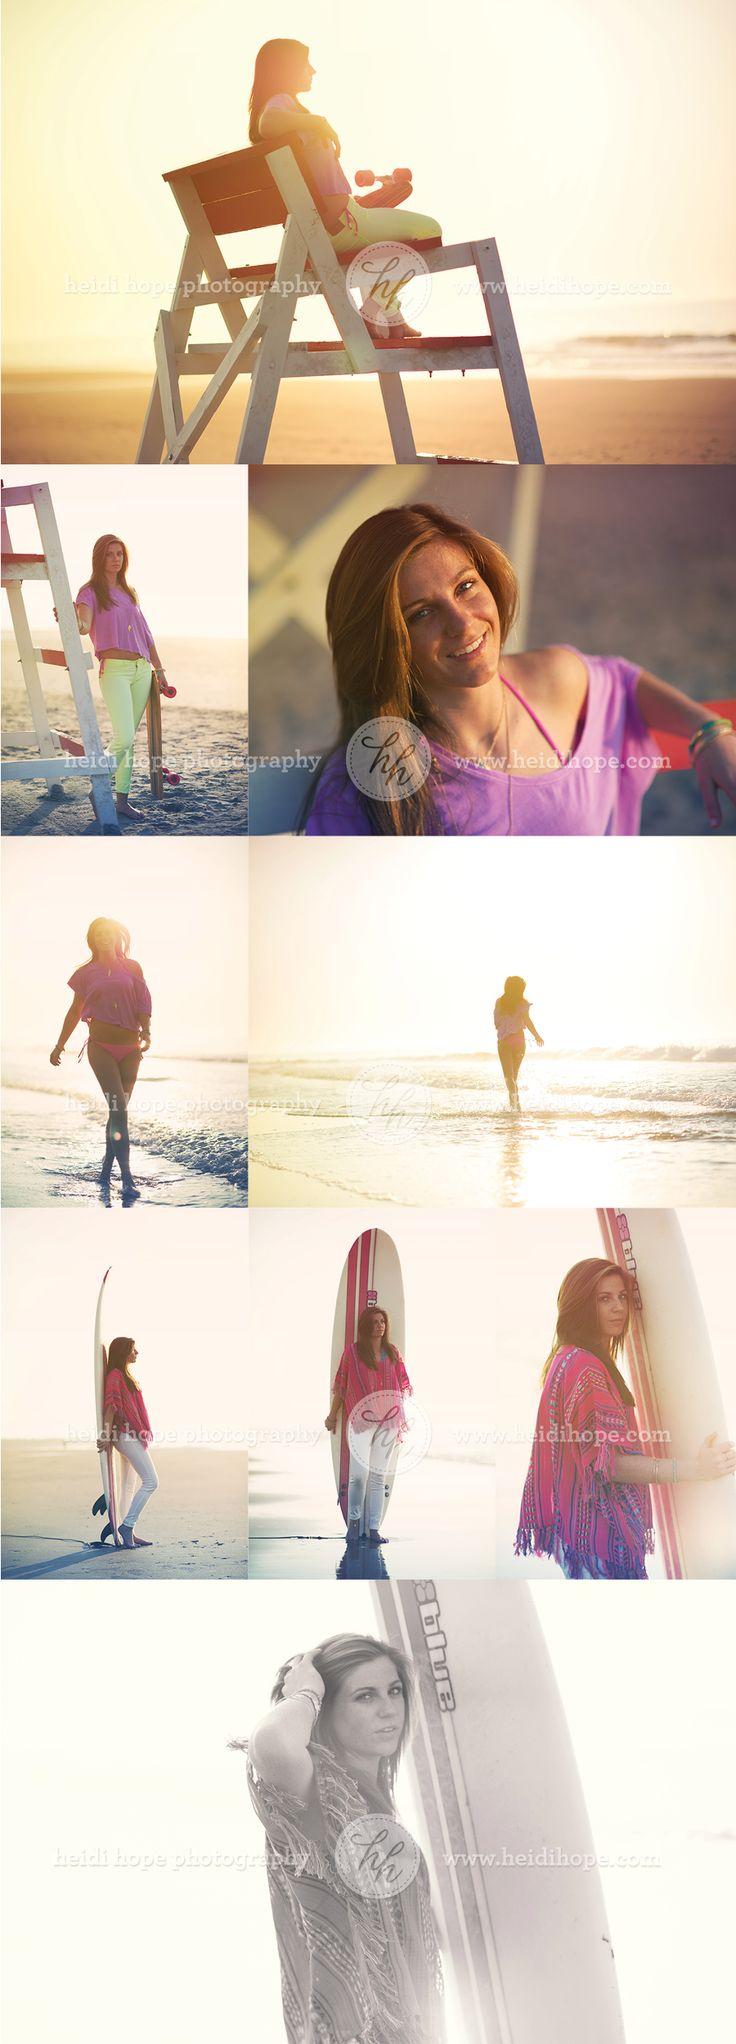 Teen Modeling and Senior Surfing Shoot on the beach by Heidi Hope Photography